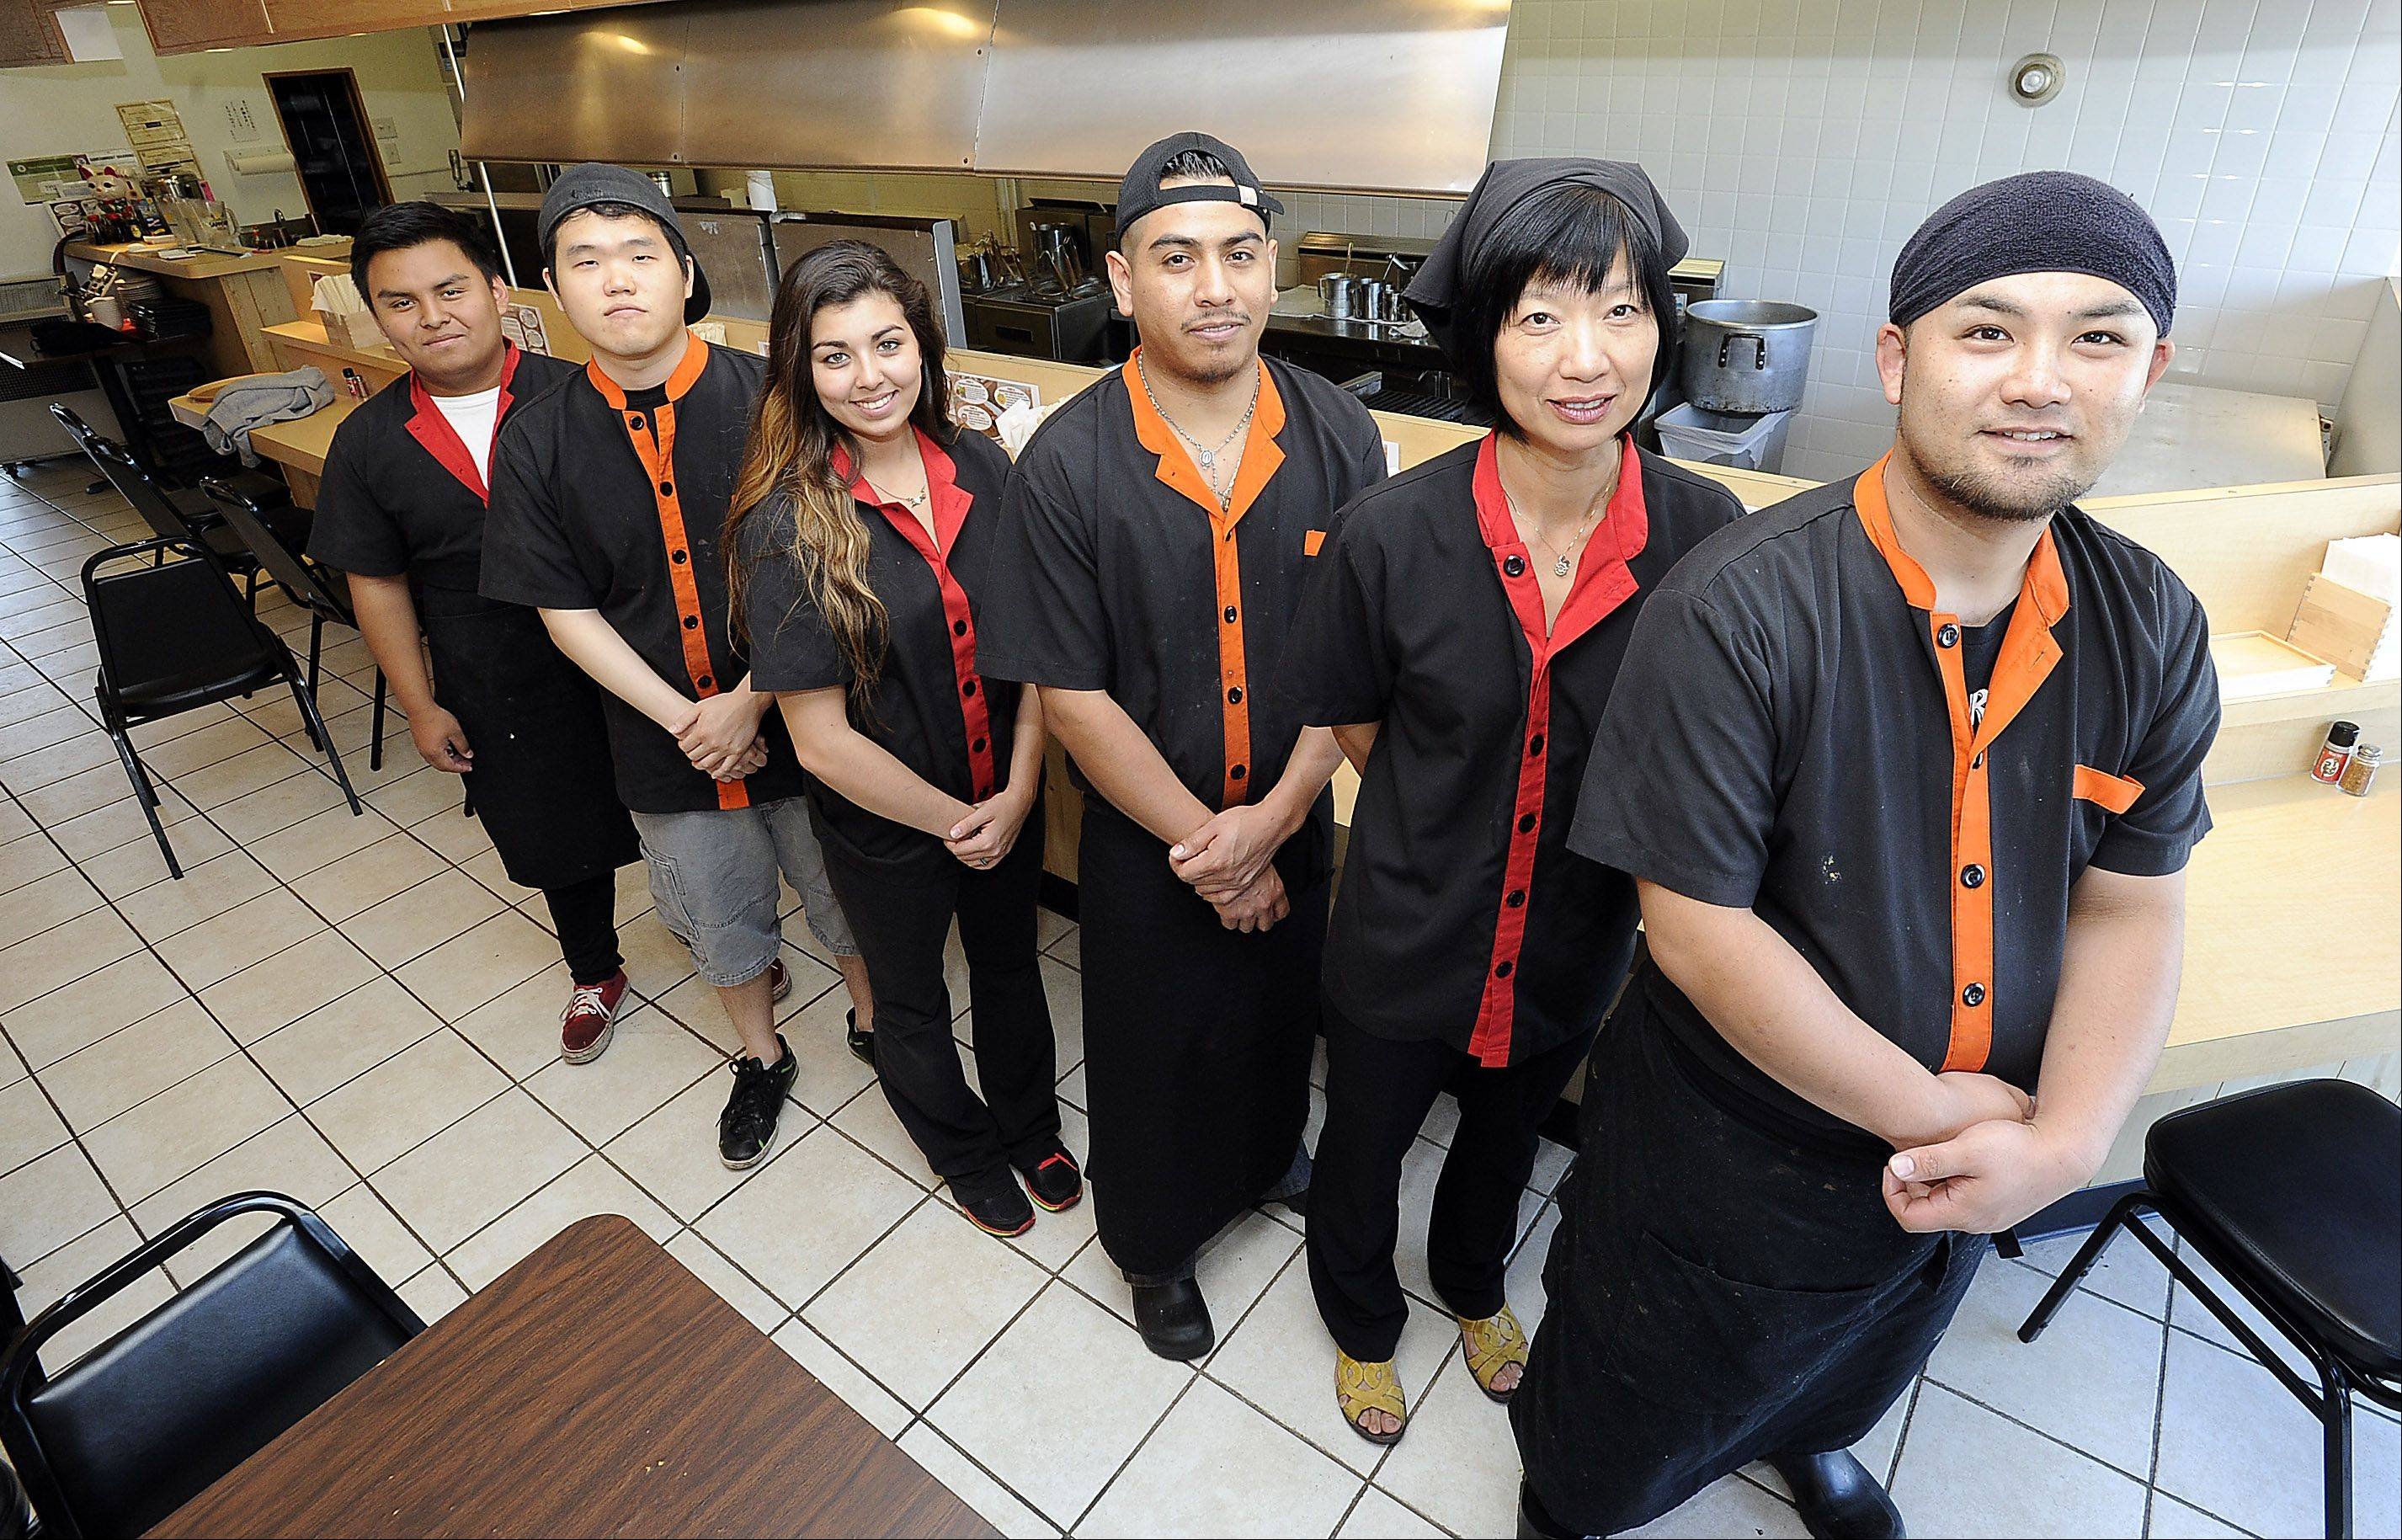 The crew at Mount Prospect's Ramen Misoya includes manager Kohei Tomita, front, Linda Sullivan, Noe Rosales, Starr Tsuruta, Sang Lee and Erick Crisostomo.